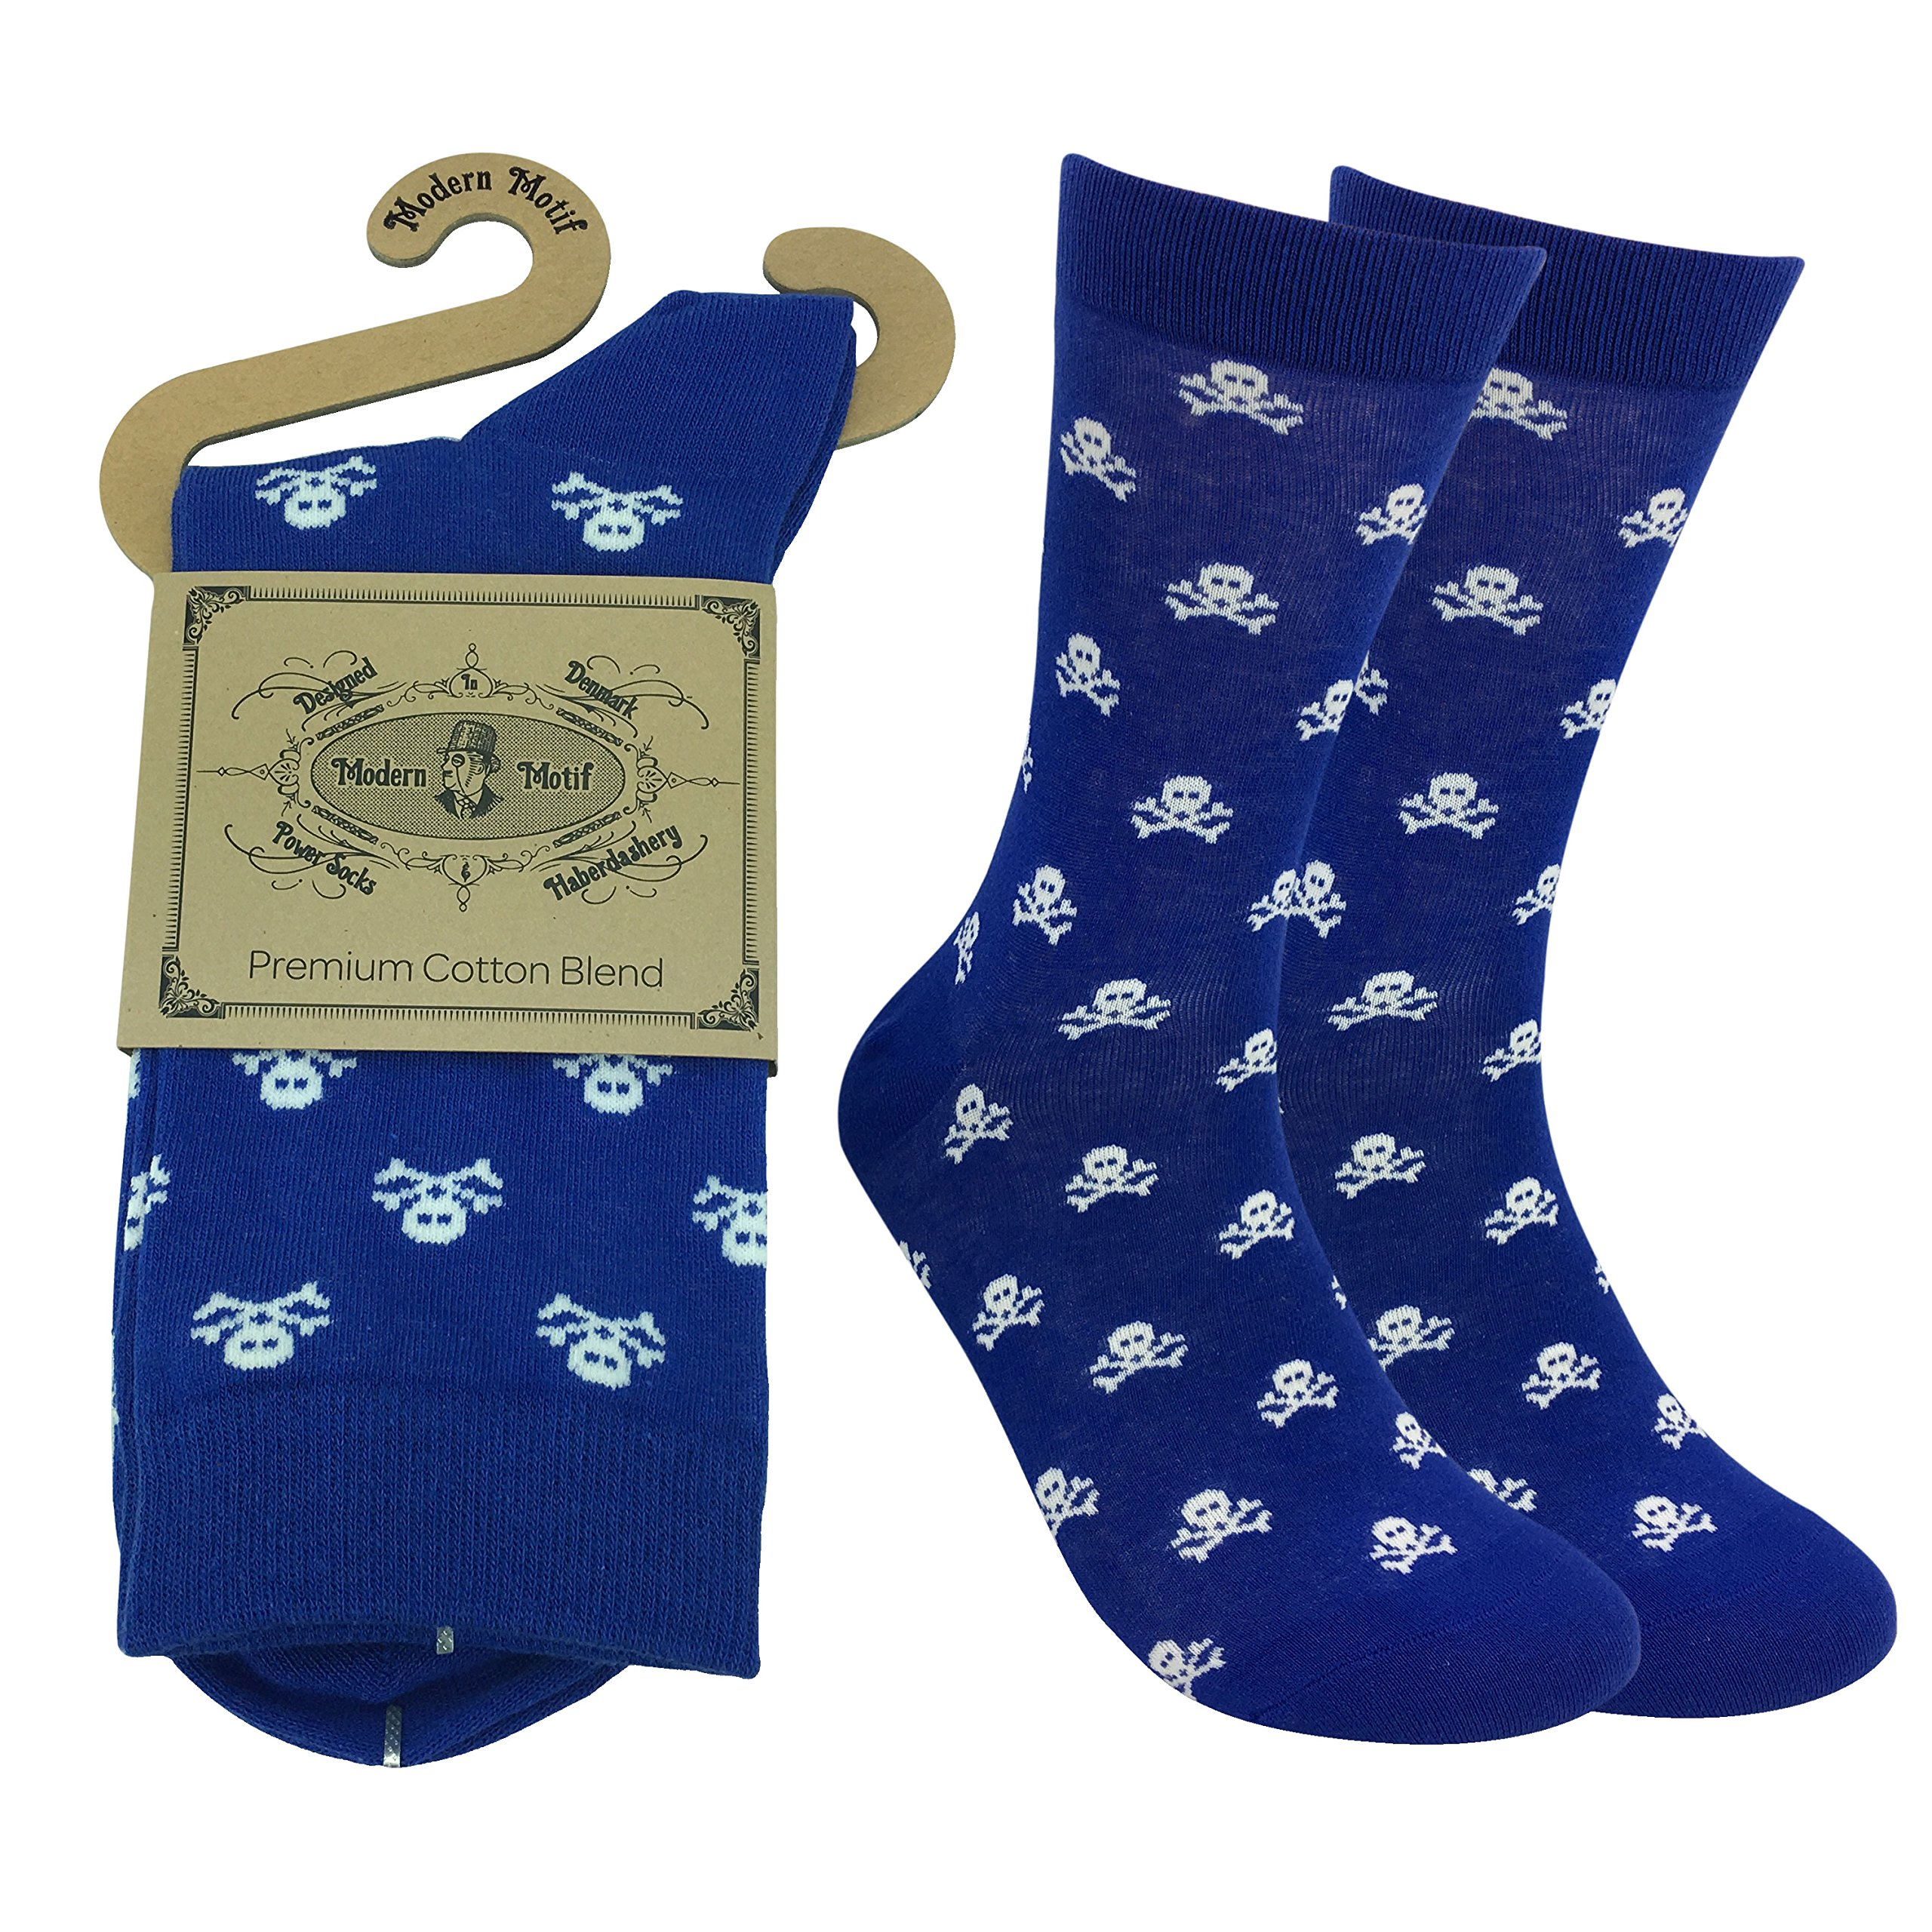 Fine Fit Men's Nevy Blue Luxury Cool Cotton Socks - Funky Fun Casual Fashion Argyle Socks Collection- Single Pairs